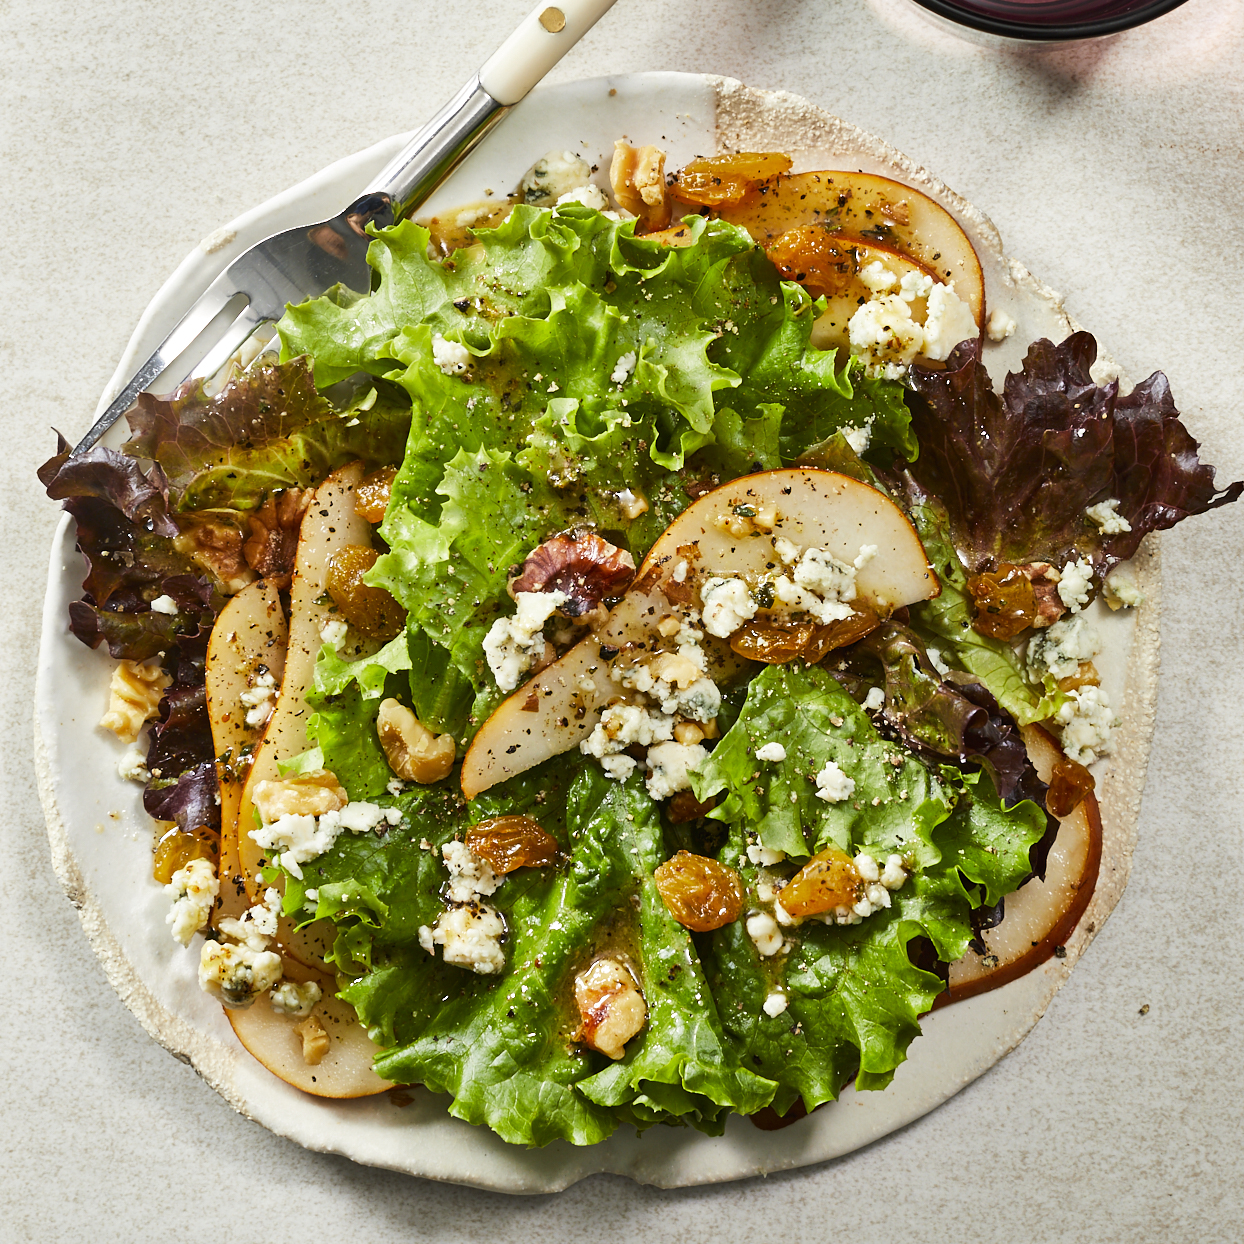 Pear, Gorgonzola & Walnut Salad